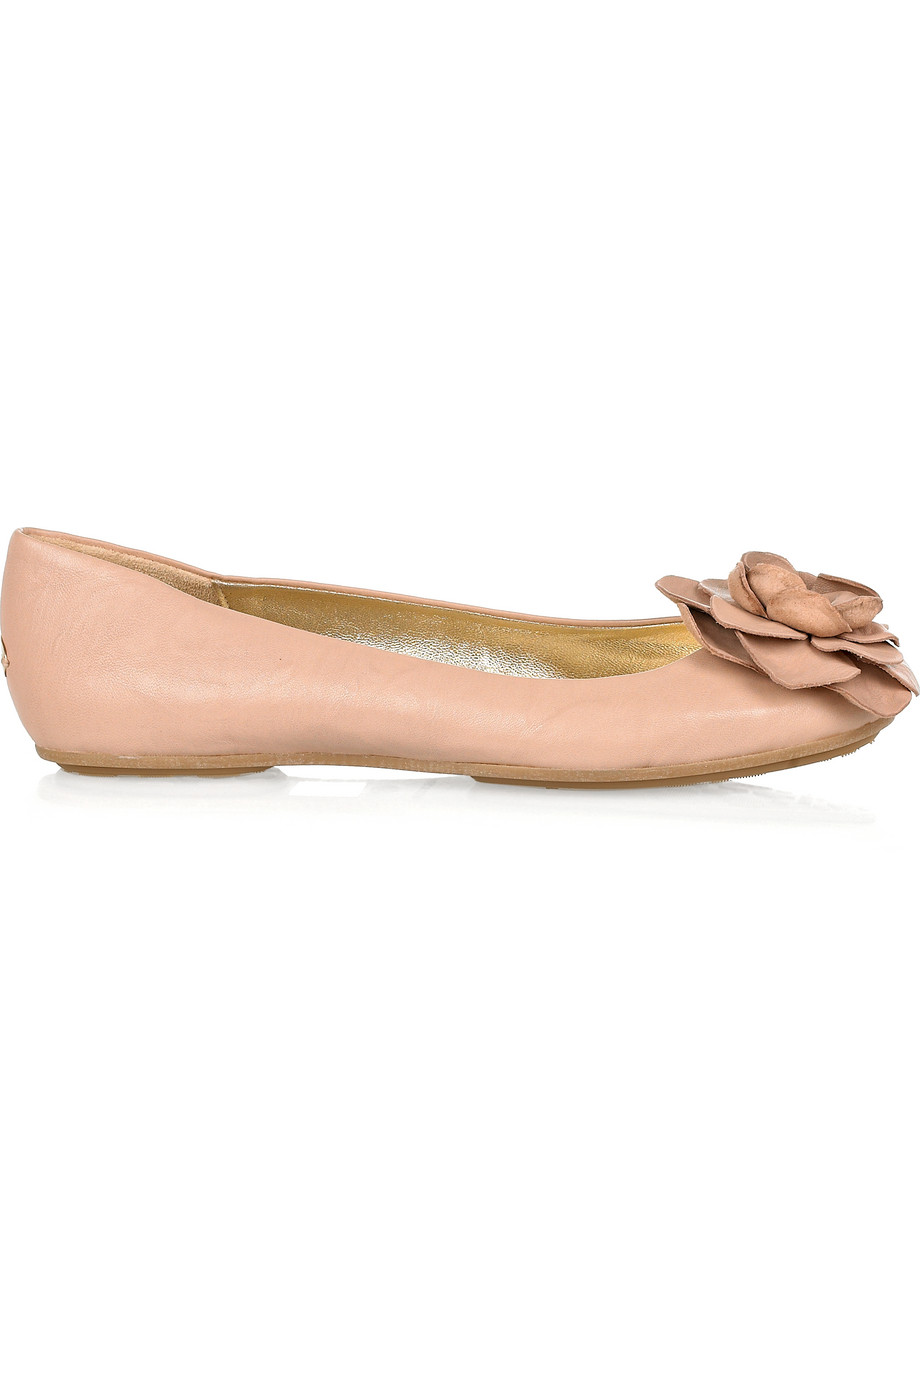 9e9043e0f2f Lyst - Jimmy Choo Warwick Leather Ballerina Flats in Natural